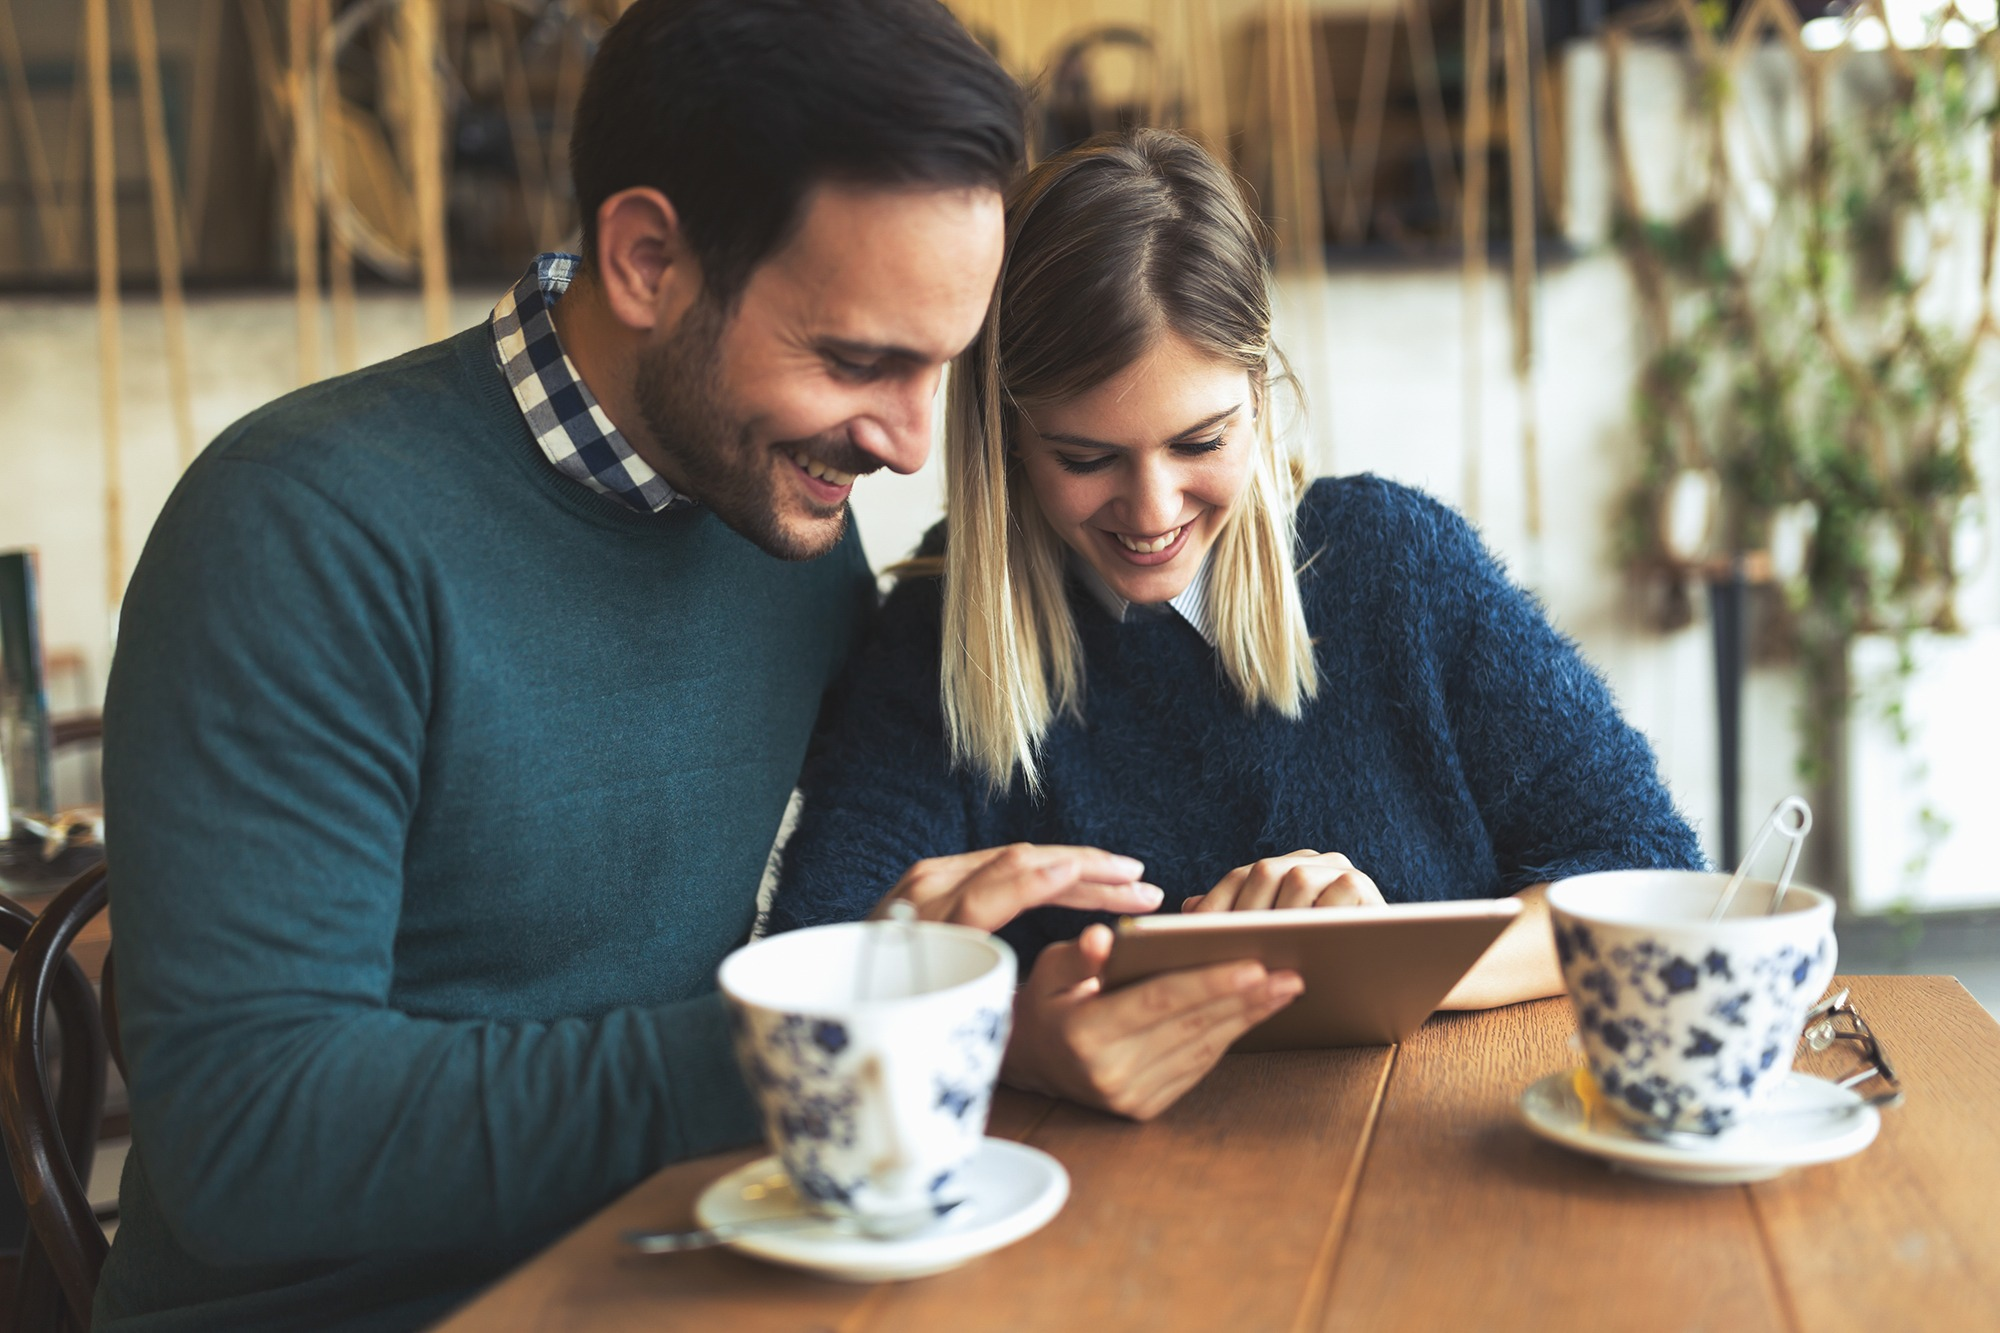 Young attractive couple using digital tablet in coffee shop